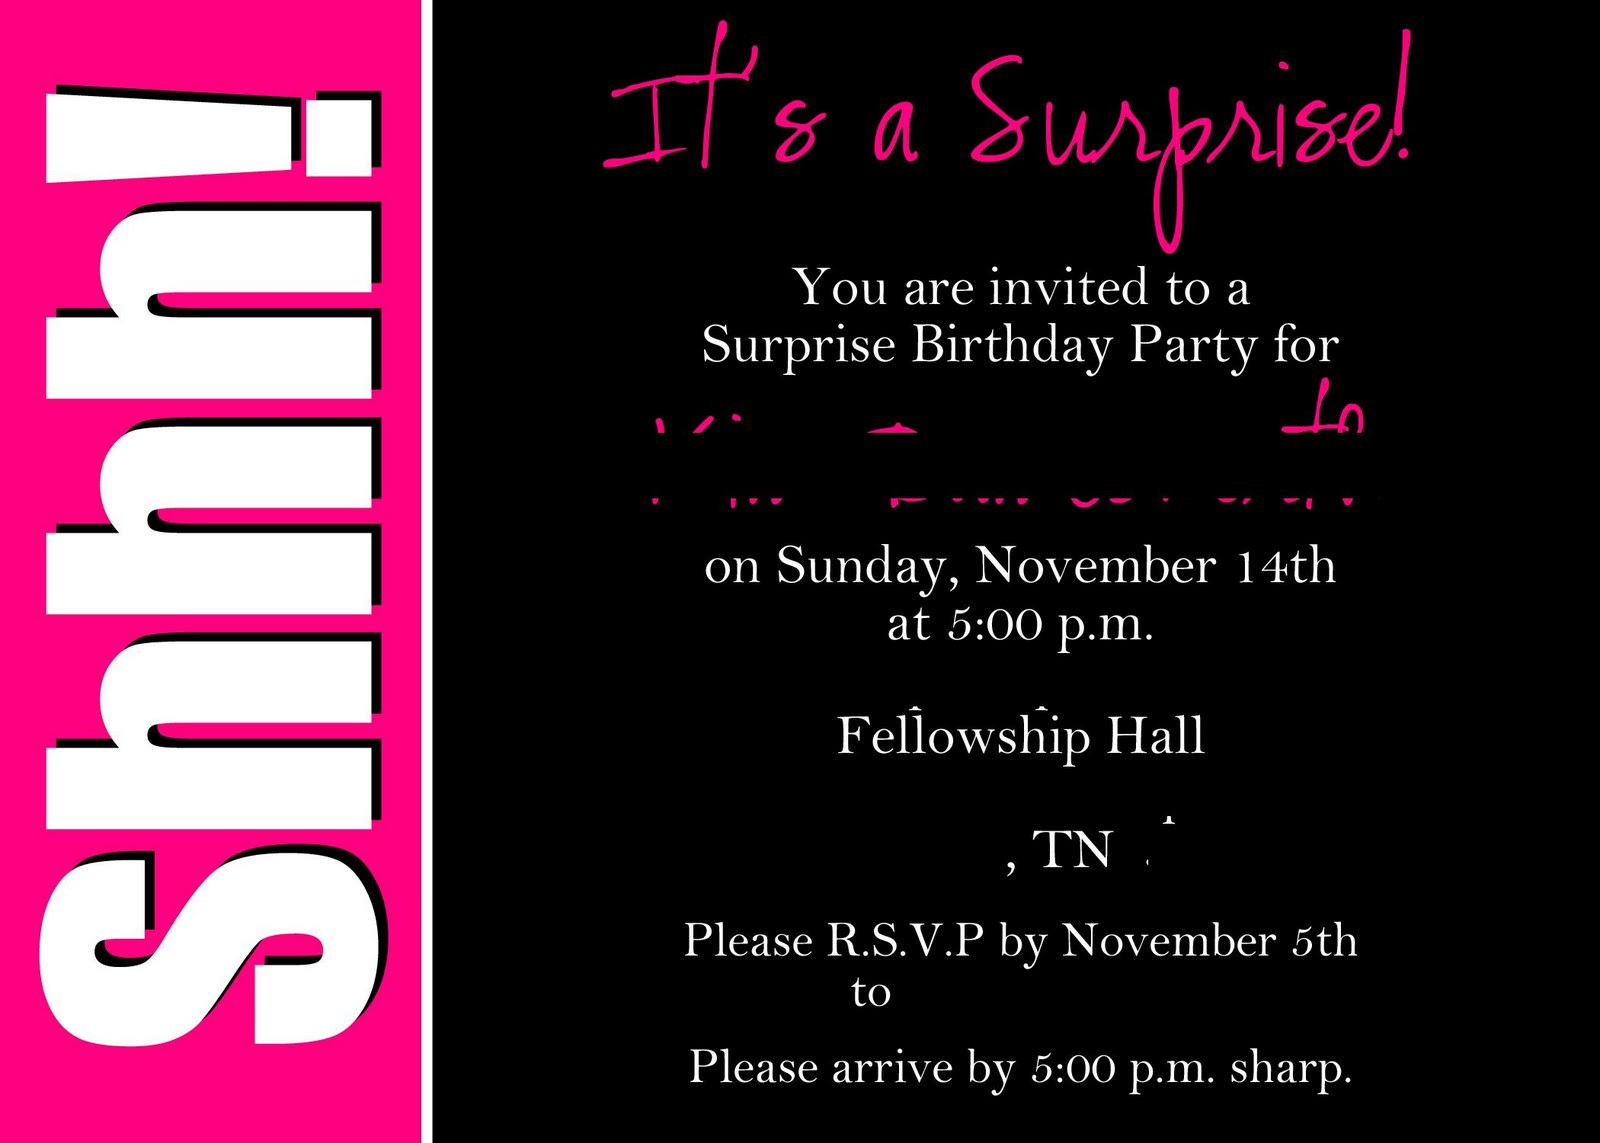 18th birthday invitation cards printable ; 18th-birthday-invitation-maker-free